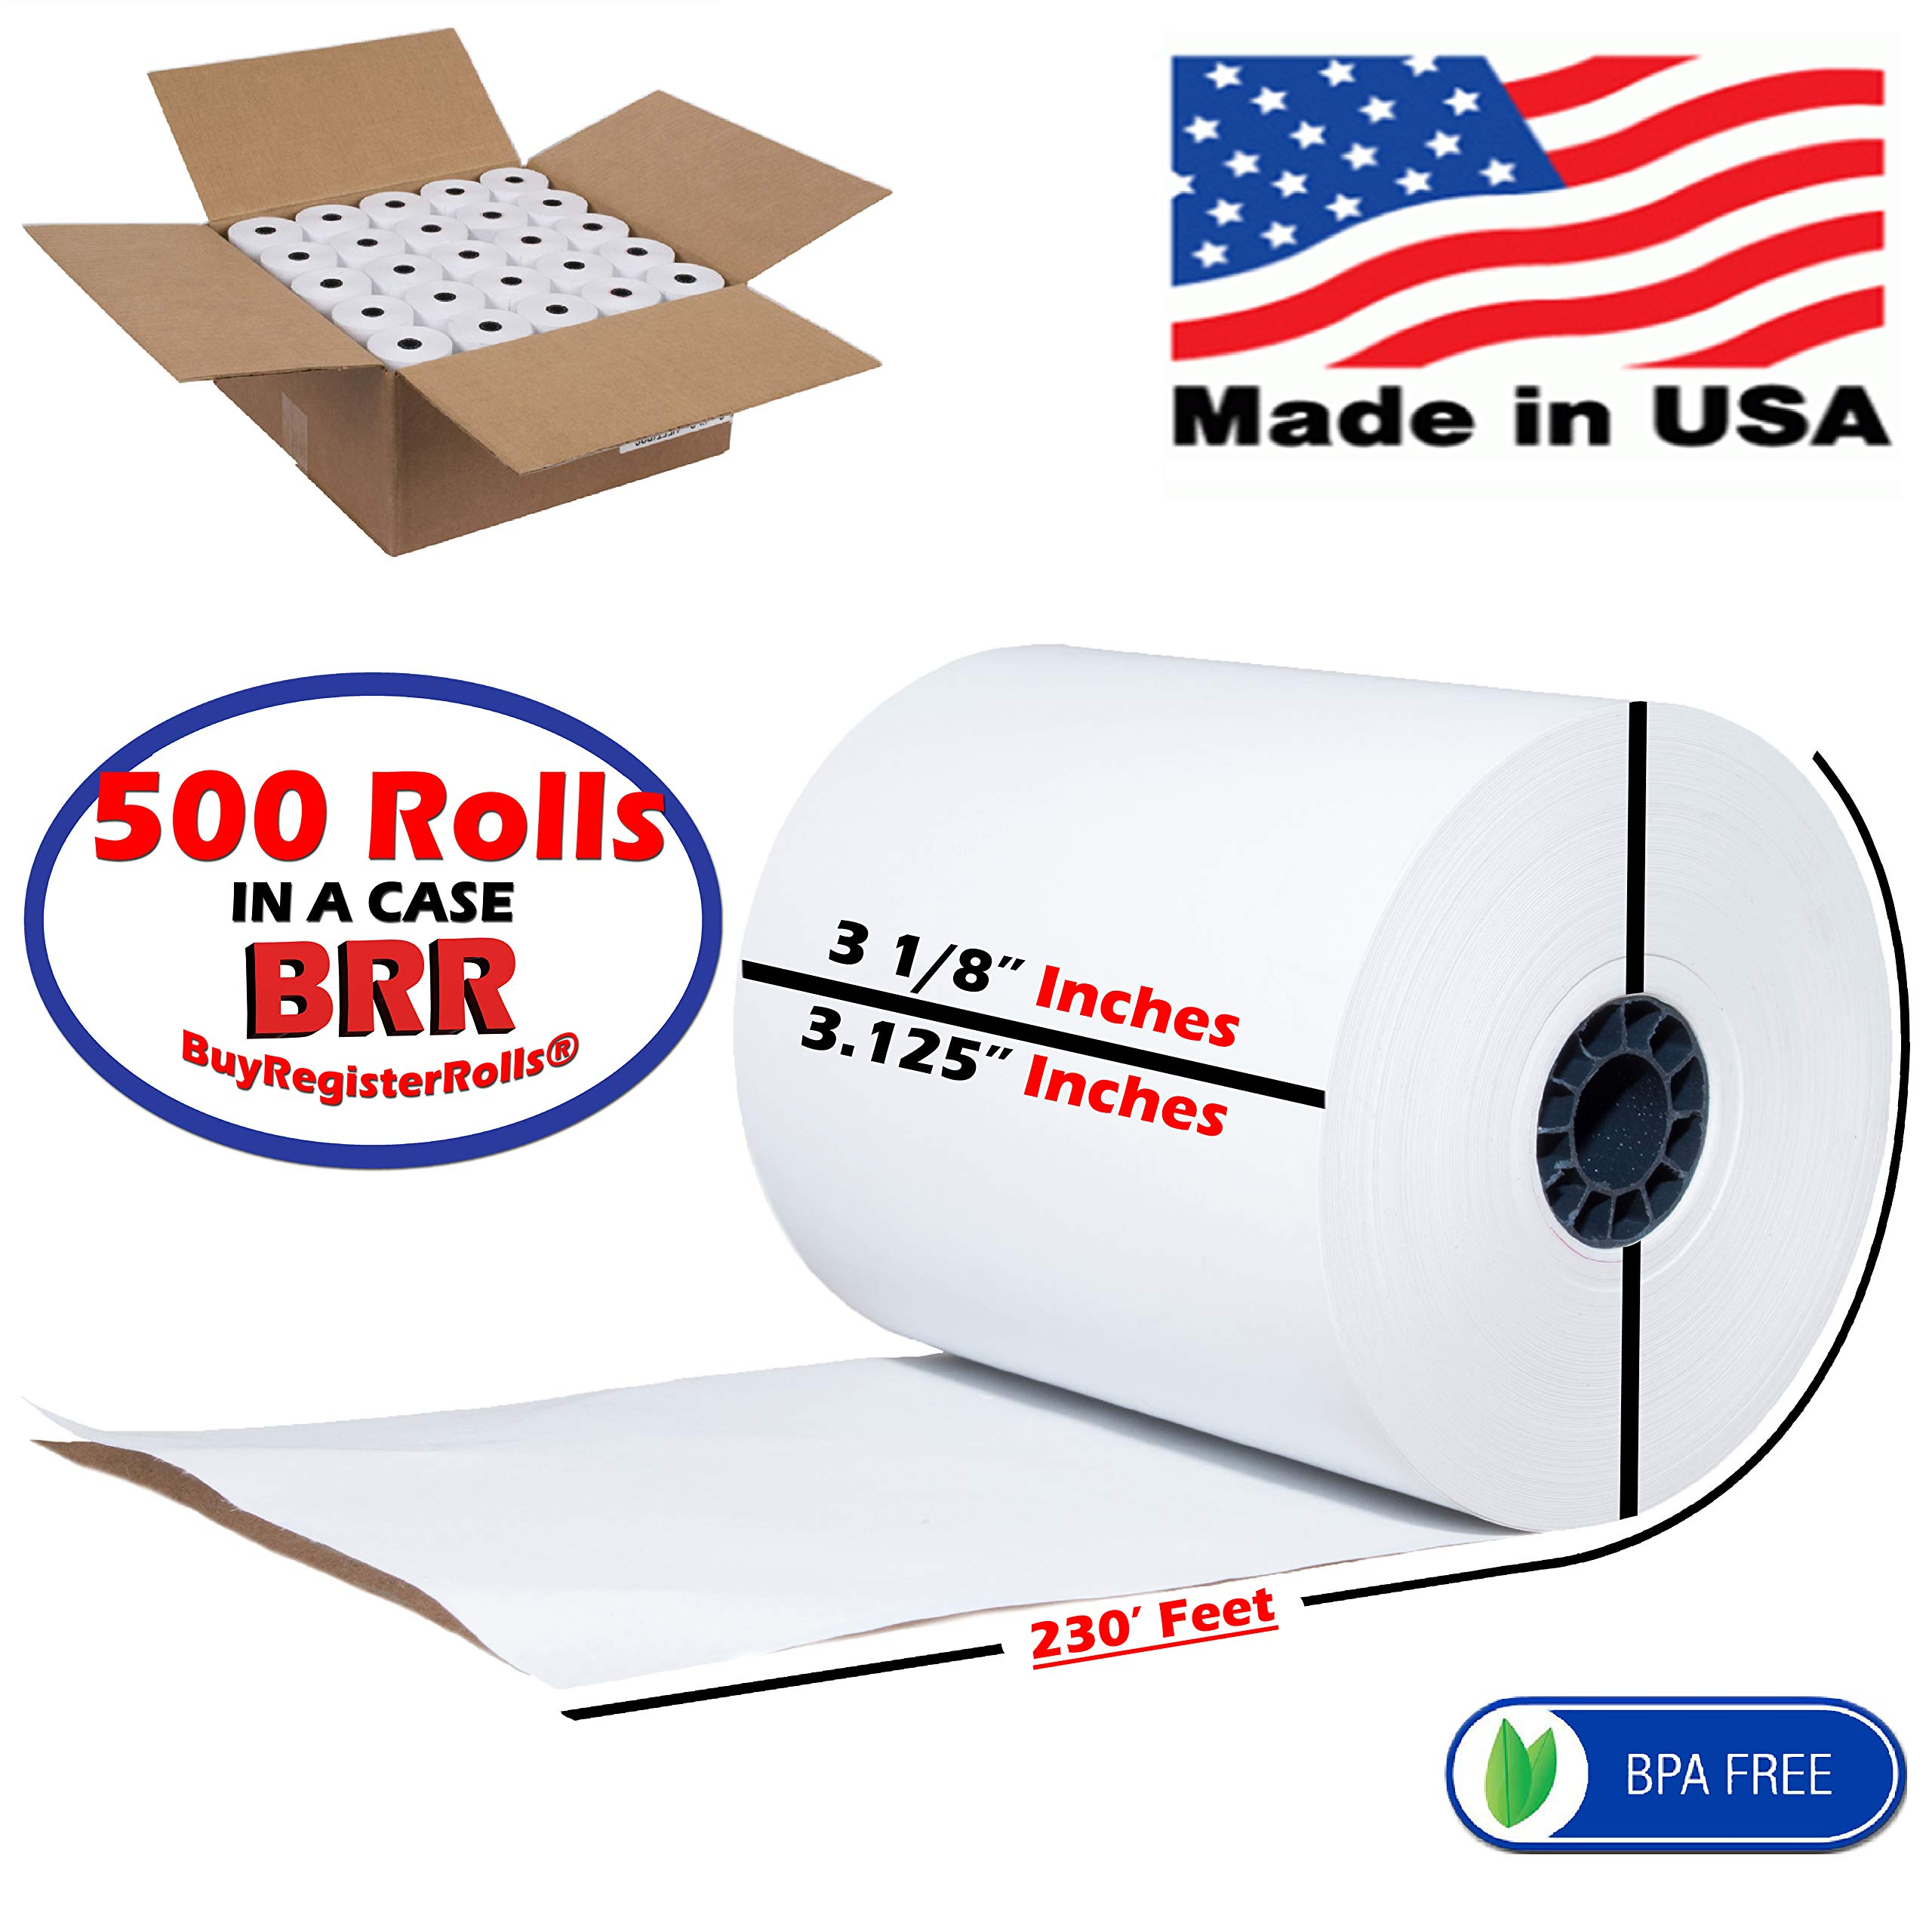 3 1/8 x 230 Thermal Paper roll 500 Pack | More Paper Than Others | Super Saver Value Pack | BPA Free Cash Register Rolls - from BuyRegisterRoll